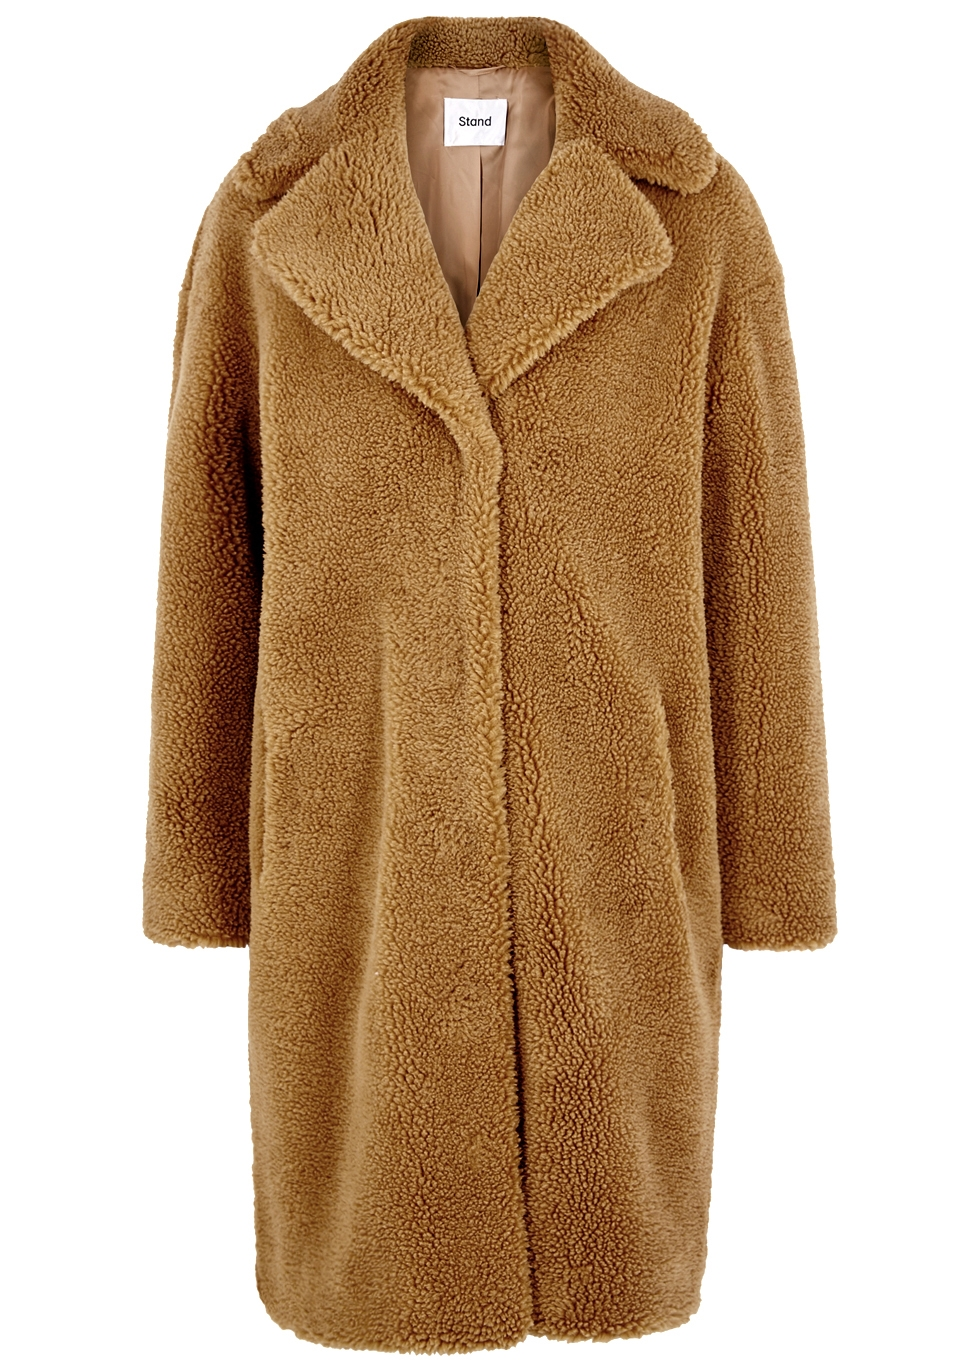 Designer Sheepskin Coat | Designer Coats Women S Winter Coats Harvey Nichols